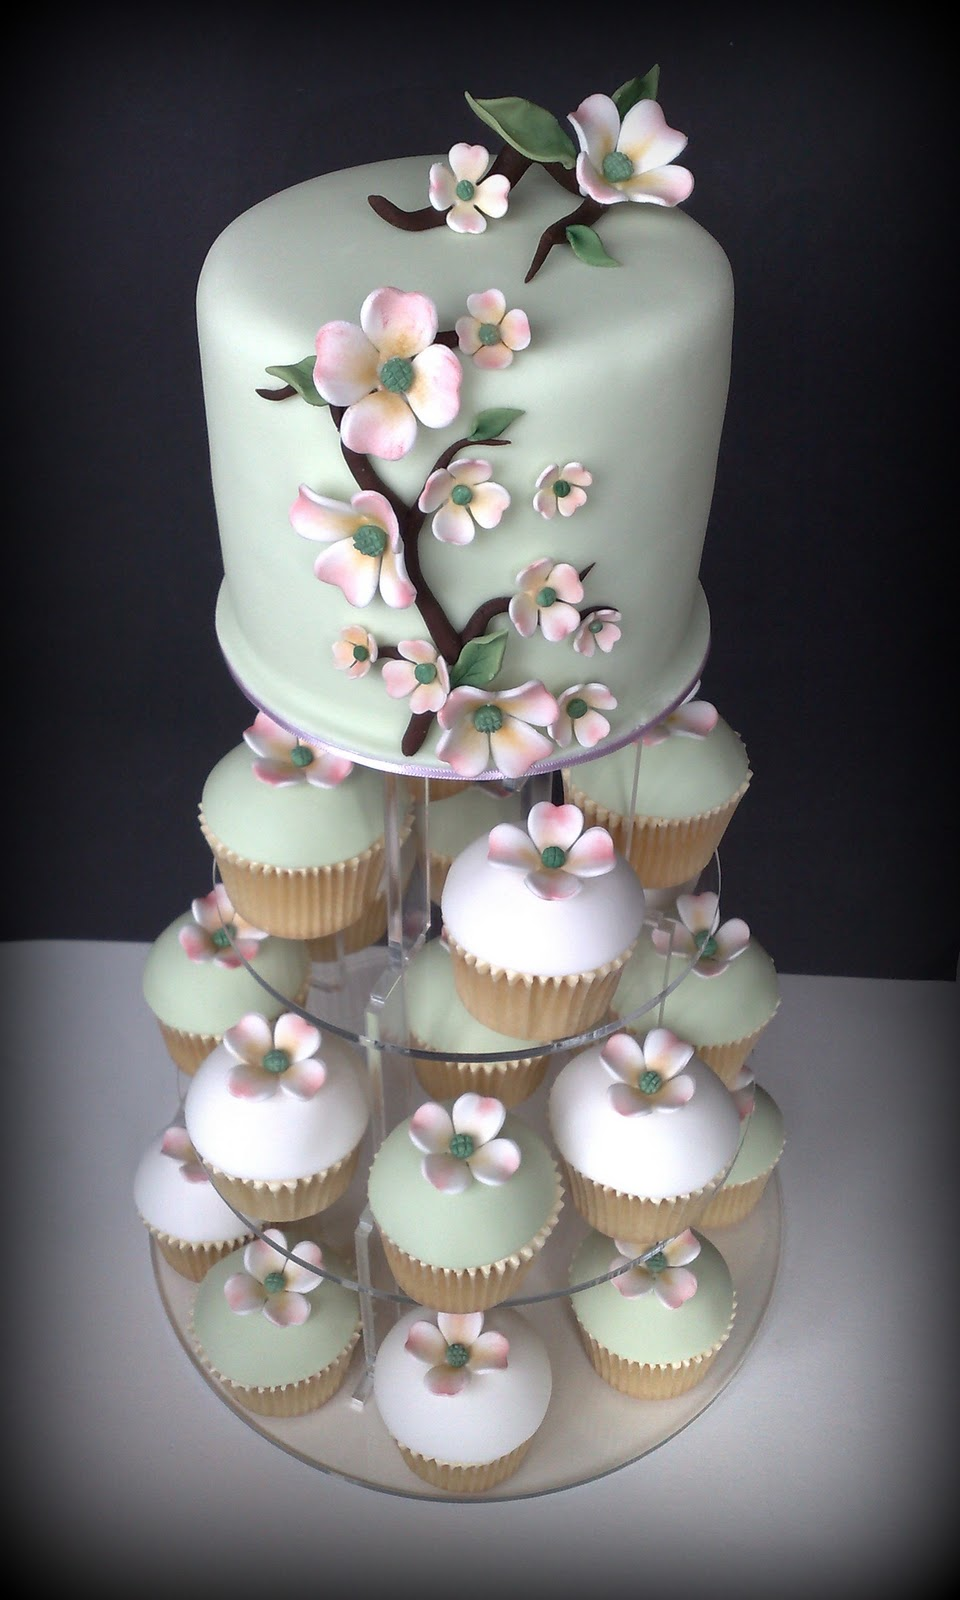 small things iced dogwood wedding cupcakes cutting cake. Black Bedroom Furniture Sets. Home Design Ideas